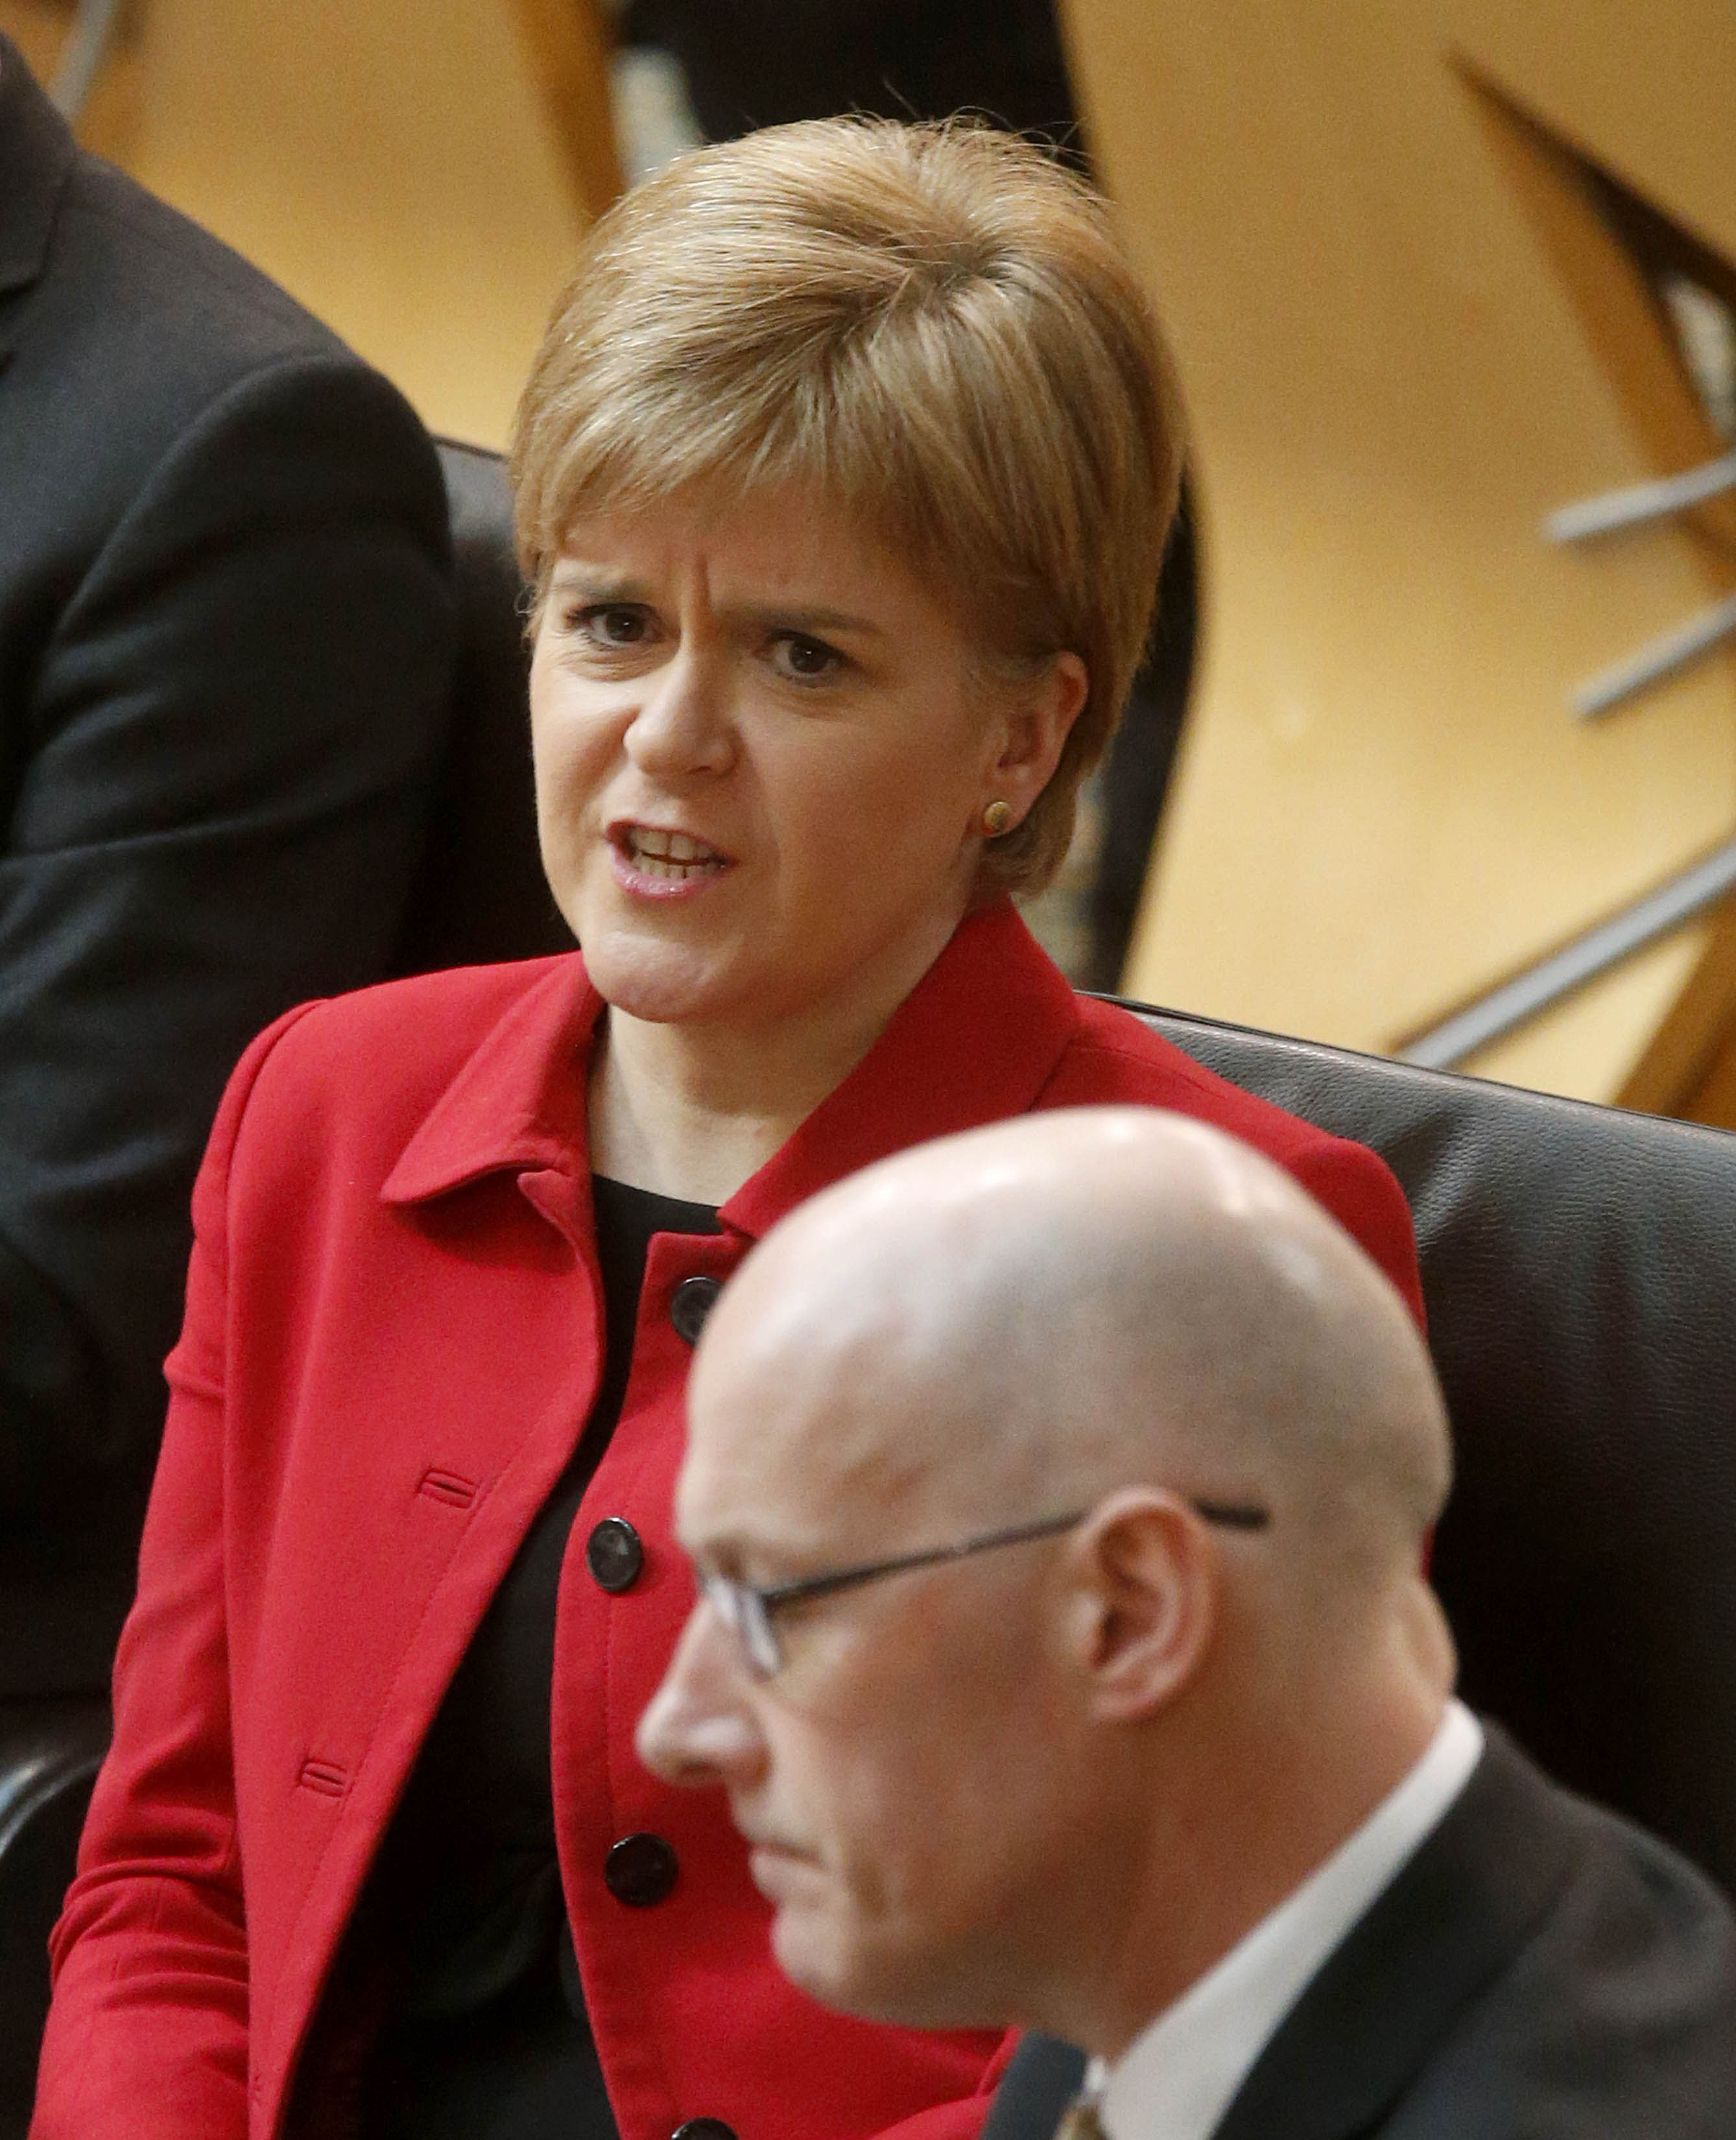 First Minister Nicola Sturgeon during the debate on a second referendum on independence at Scotland's Parliament in Holyrood, Edinburgh, Scotland, UK, Tuesday March 28, 2017. Photo by Fraser Bremmer/Daily Mail/PA Wire/ABACAPRESS.COM